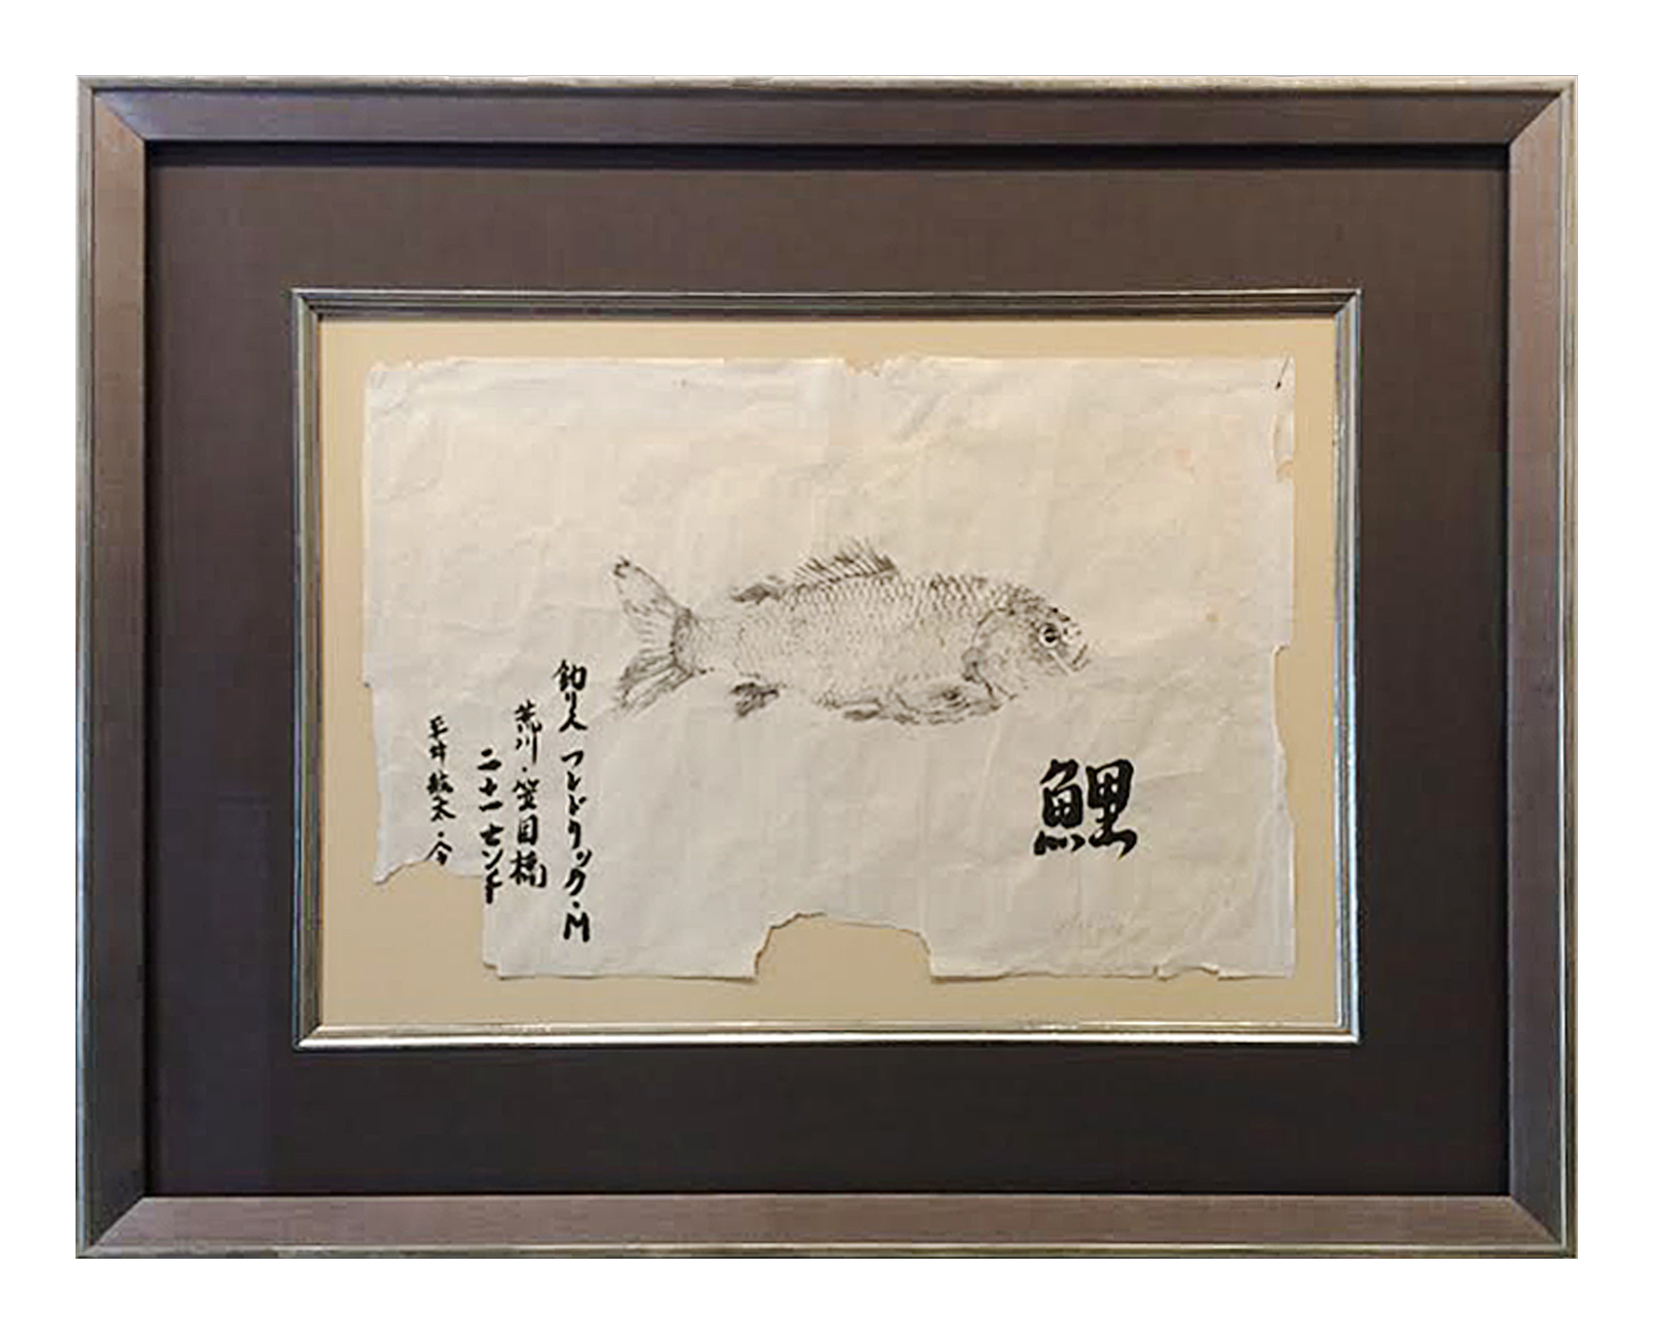 Gyotaku is the traditional Japanese method of printing actual fish, a practice which dates back to the mid-1800's. This guyotaku print is float mounted on a cream-colored board and surrounded by a silver fillet that harmonizes with the mottled silver frame.